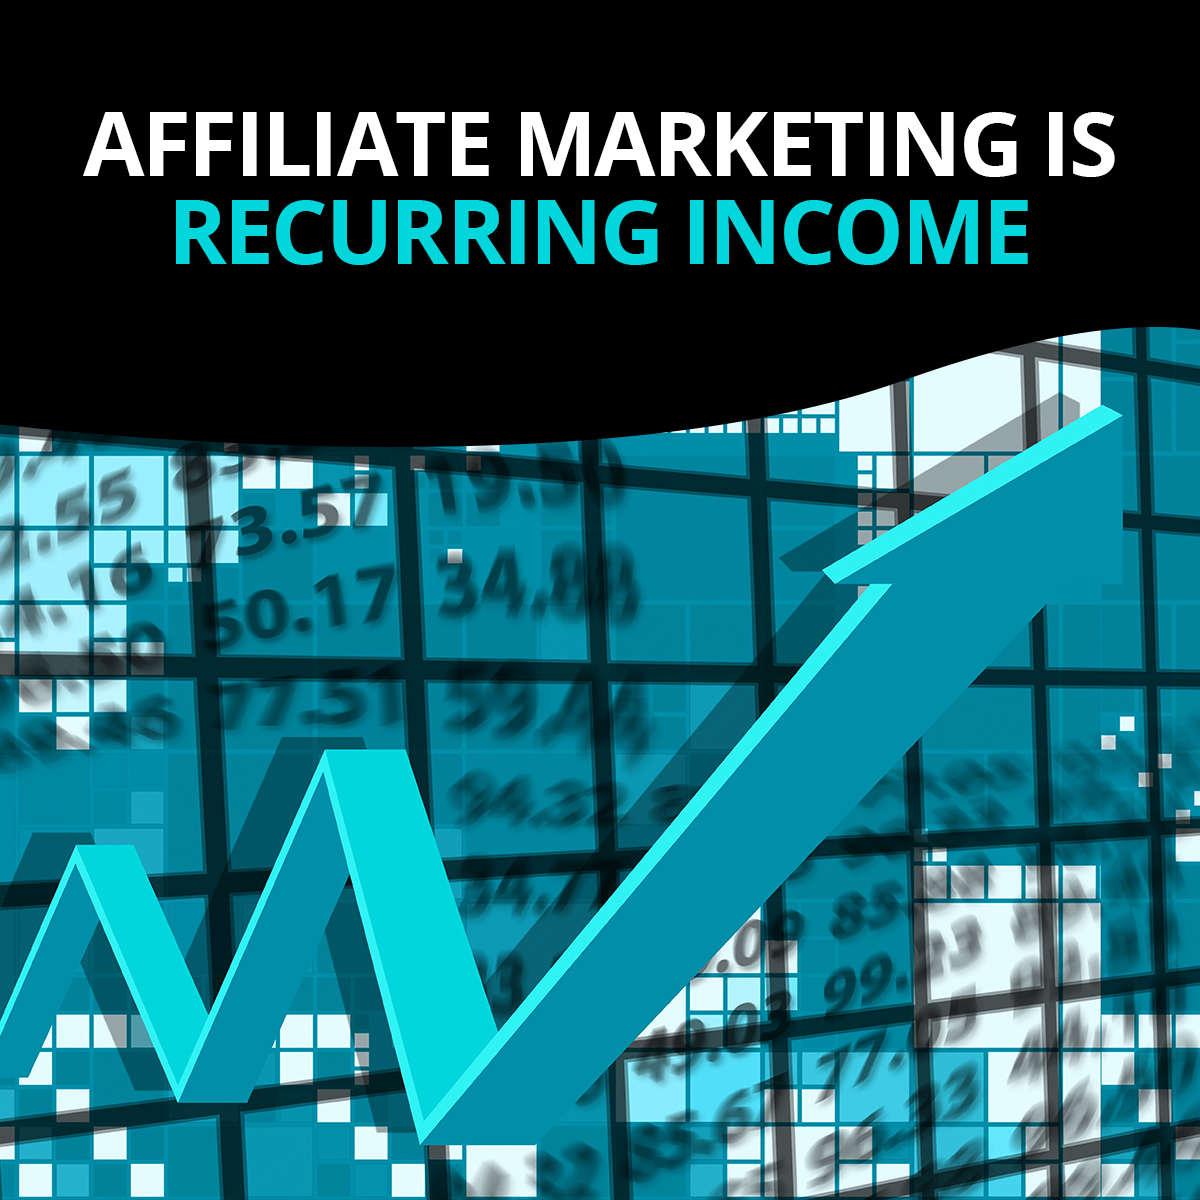 Affiliate marketing is recurring income